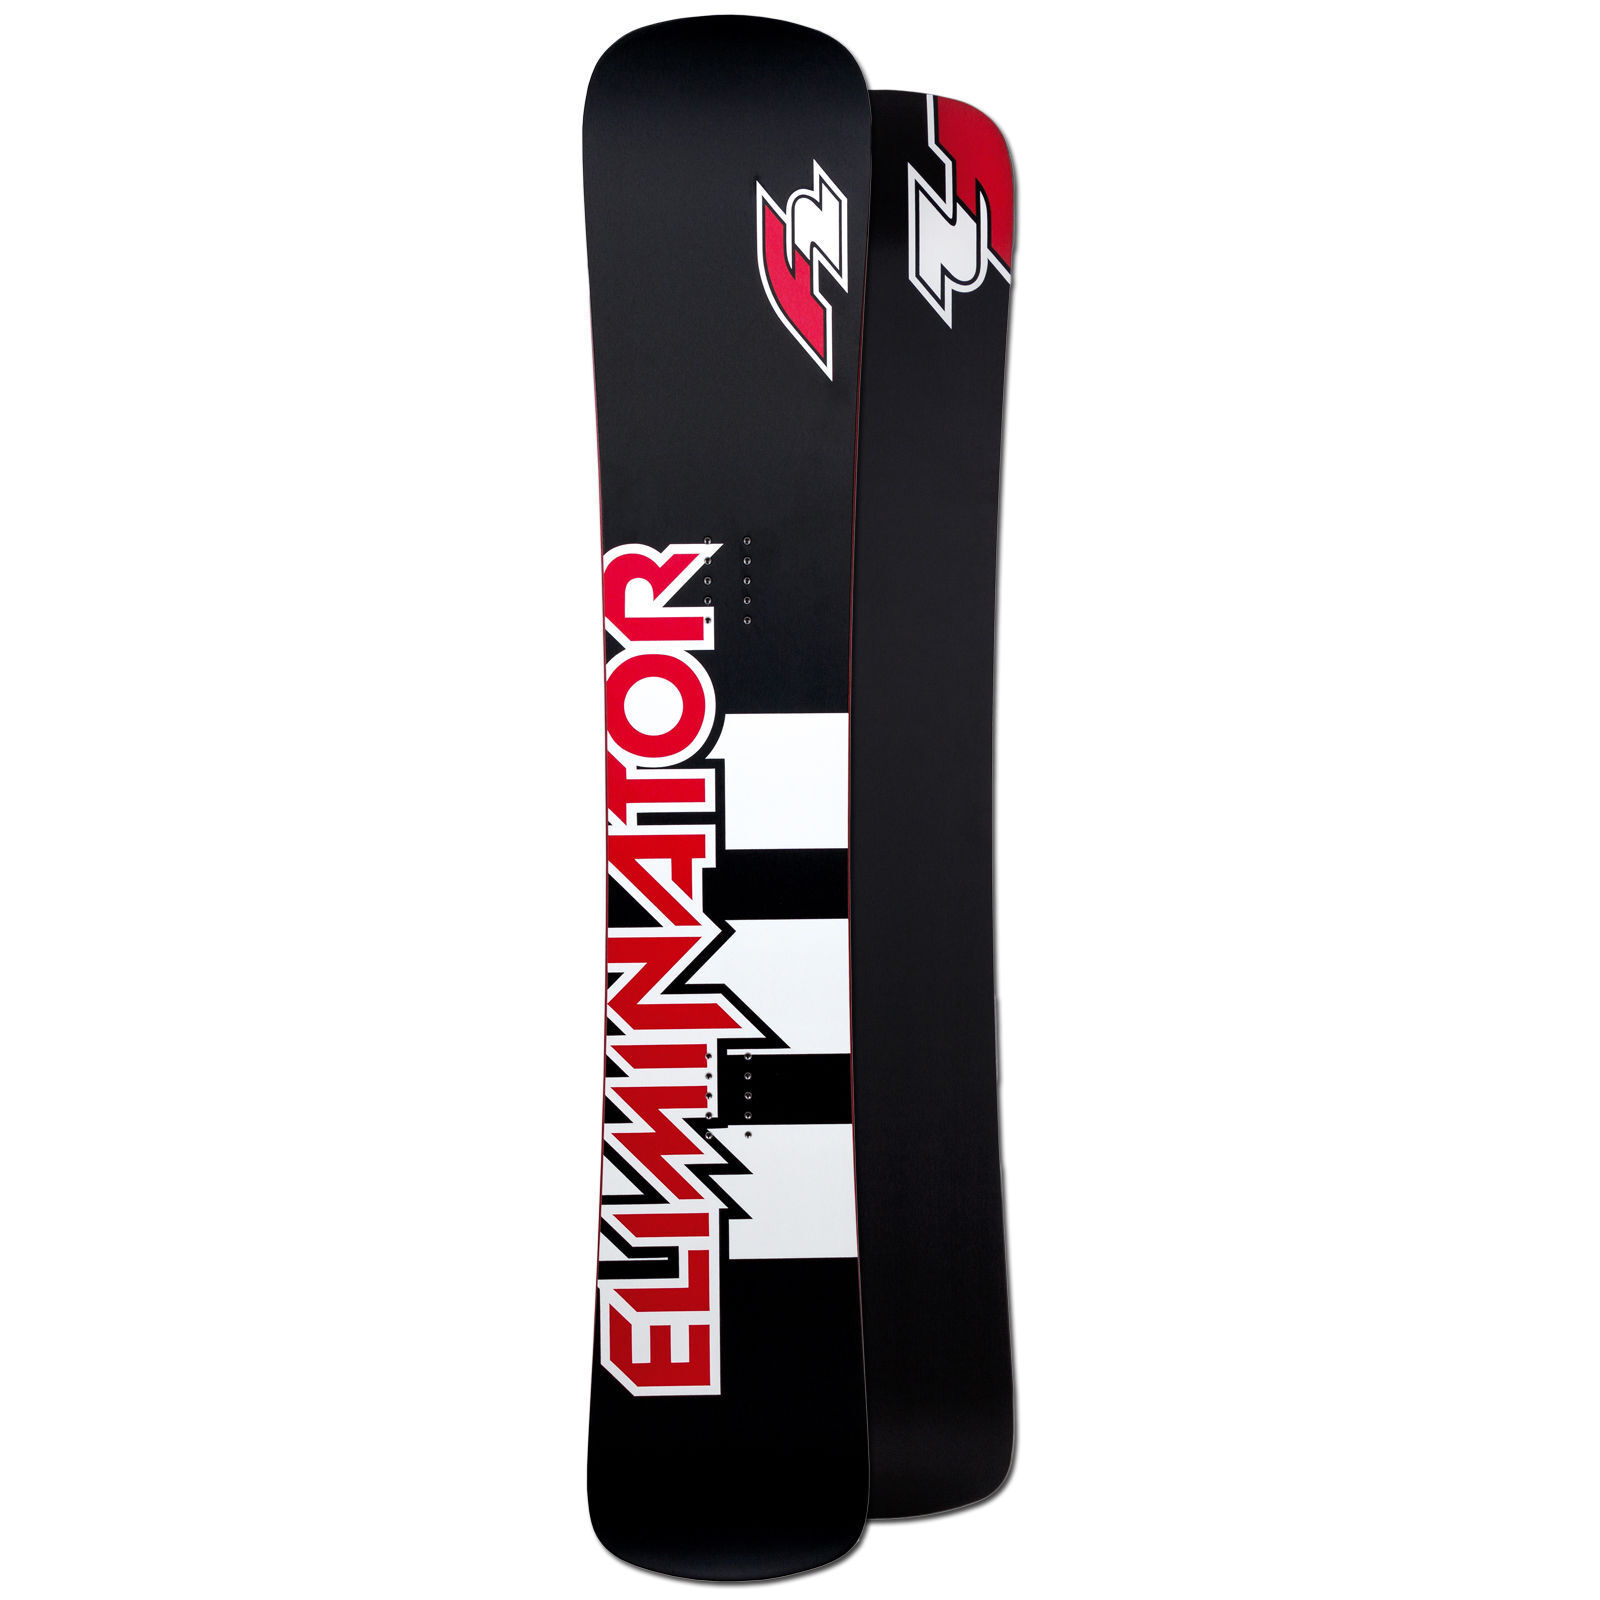 F2 Ftwo Eliminator 158 Snowboard Boardercross FreeCocheve Freeride Board Nuevo